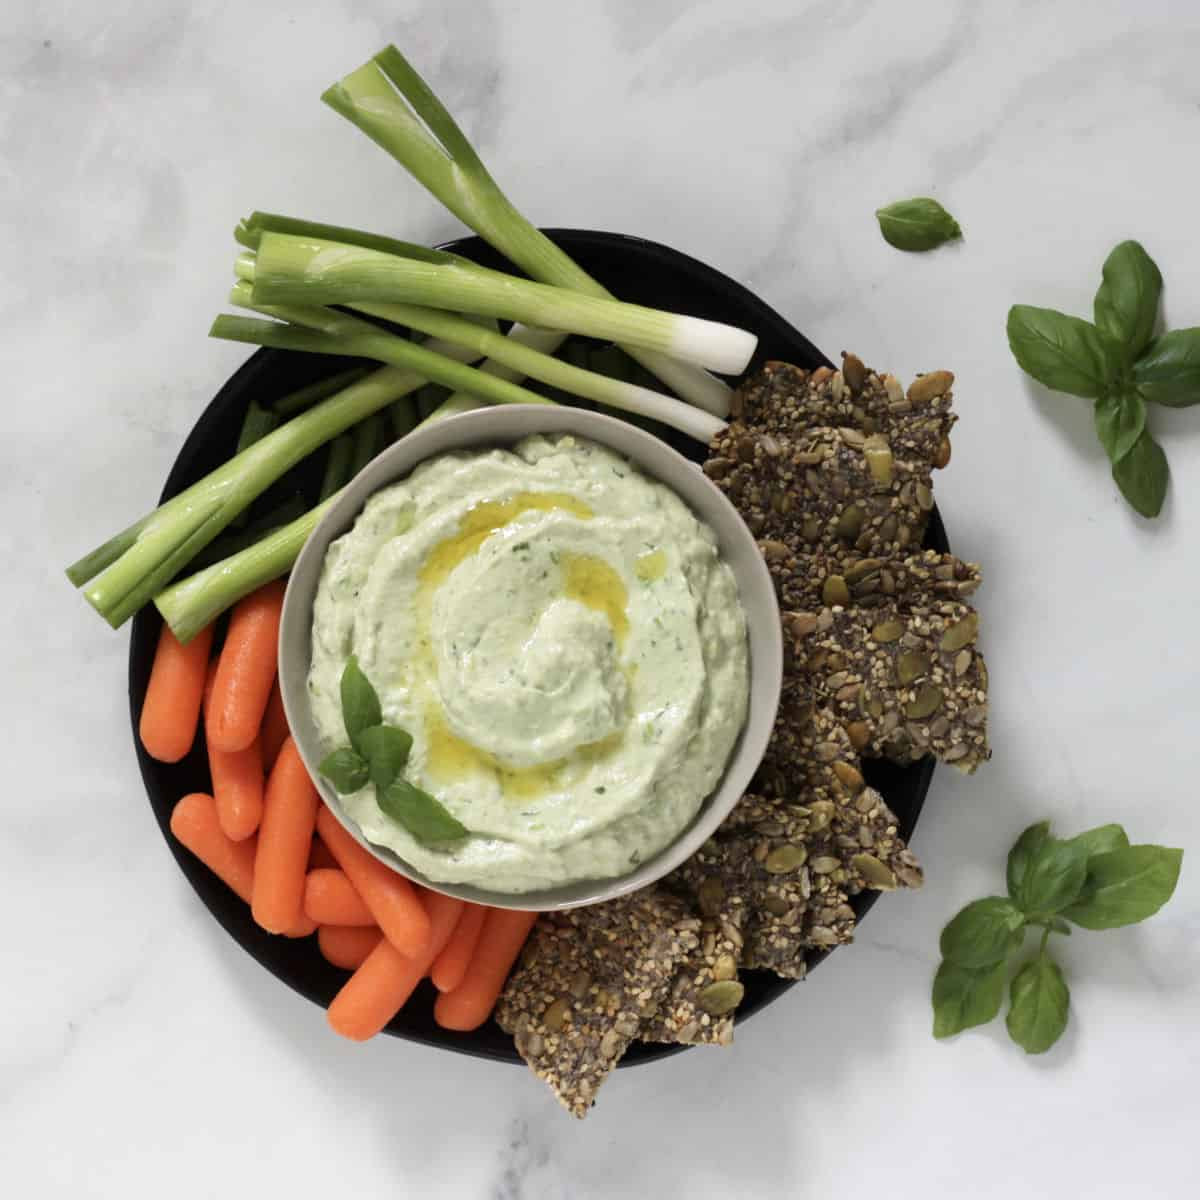 looking down on a bowl of greenish, creamy dip surrounded by carrots, green onions, and crackers